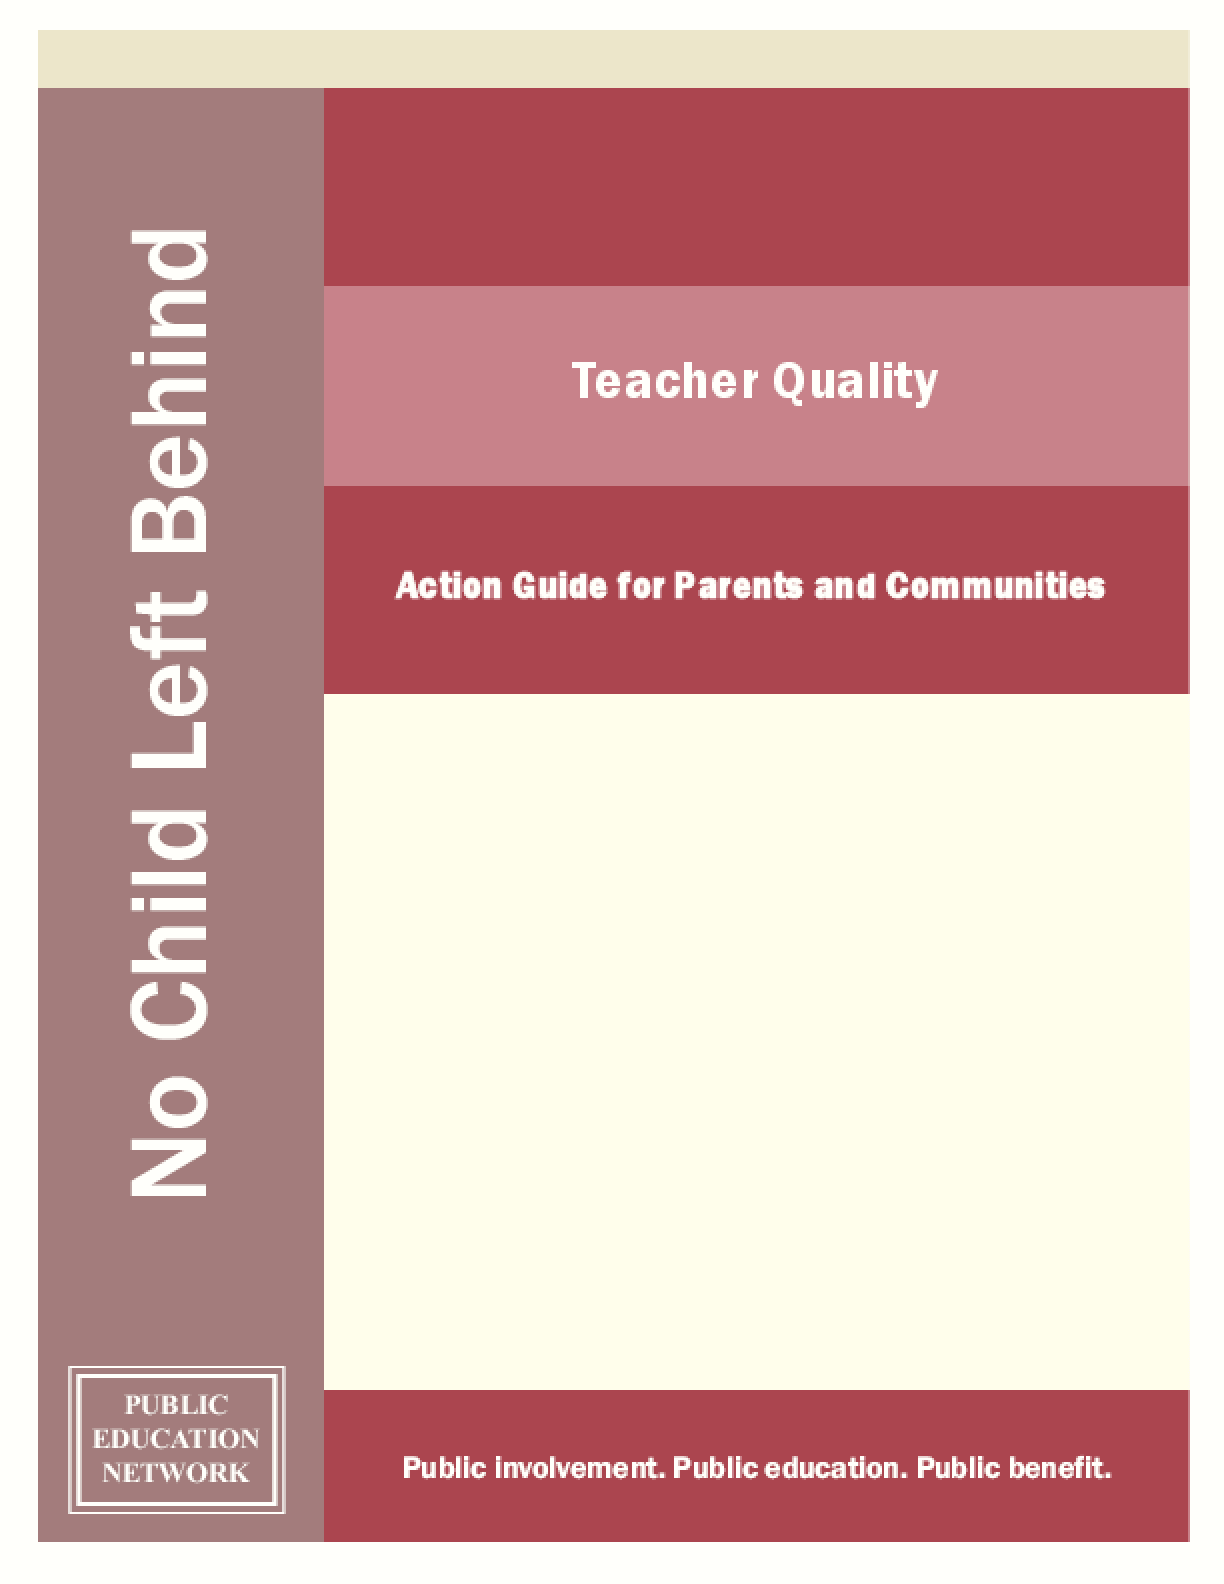 Teacher Quality: Action Guide for Parents and Communities